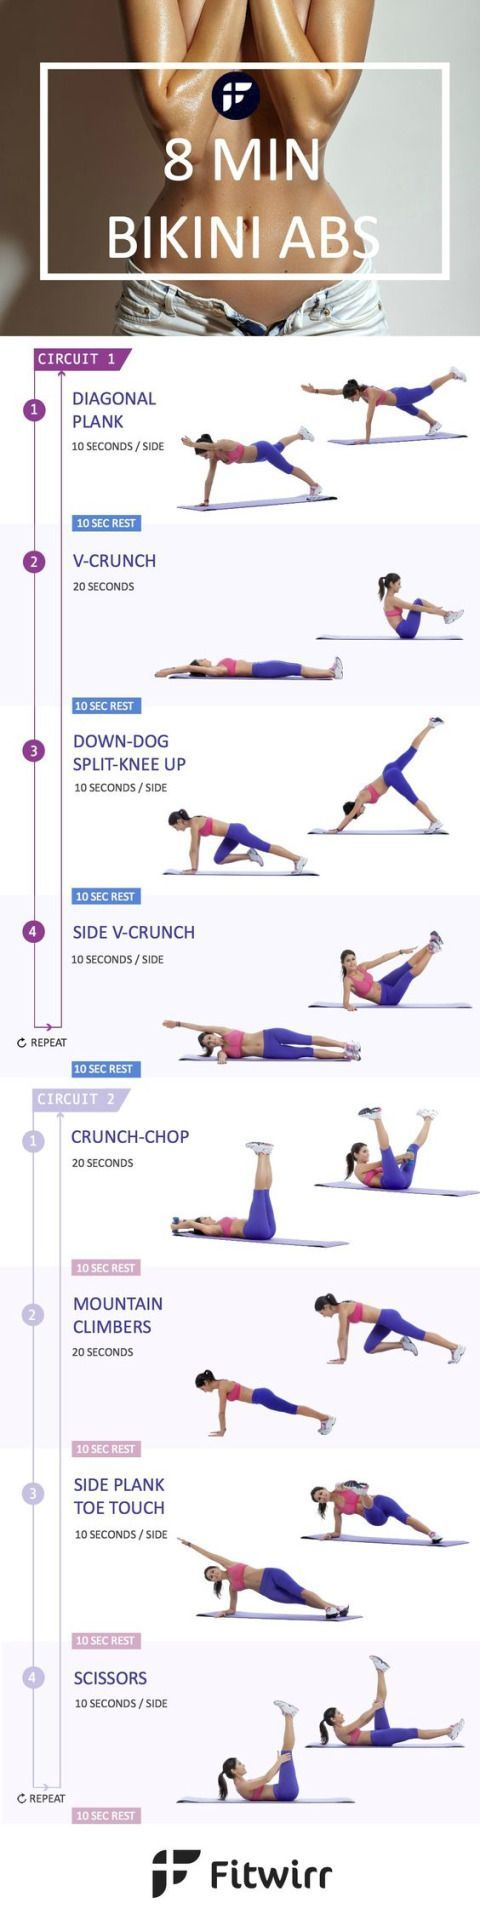 How to Lose Belly Fat Quick with 8 Minute Bikini Ab Workout #fitness